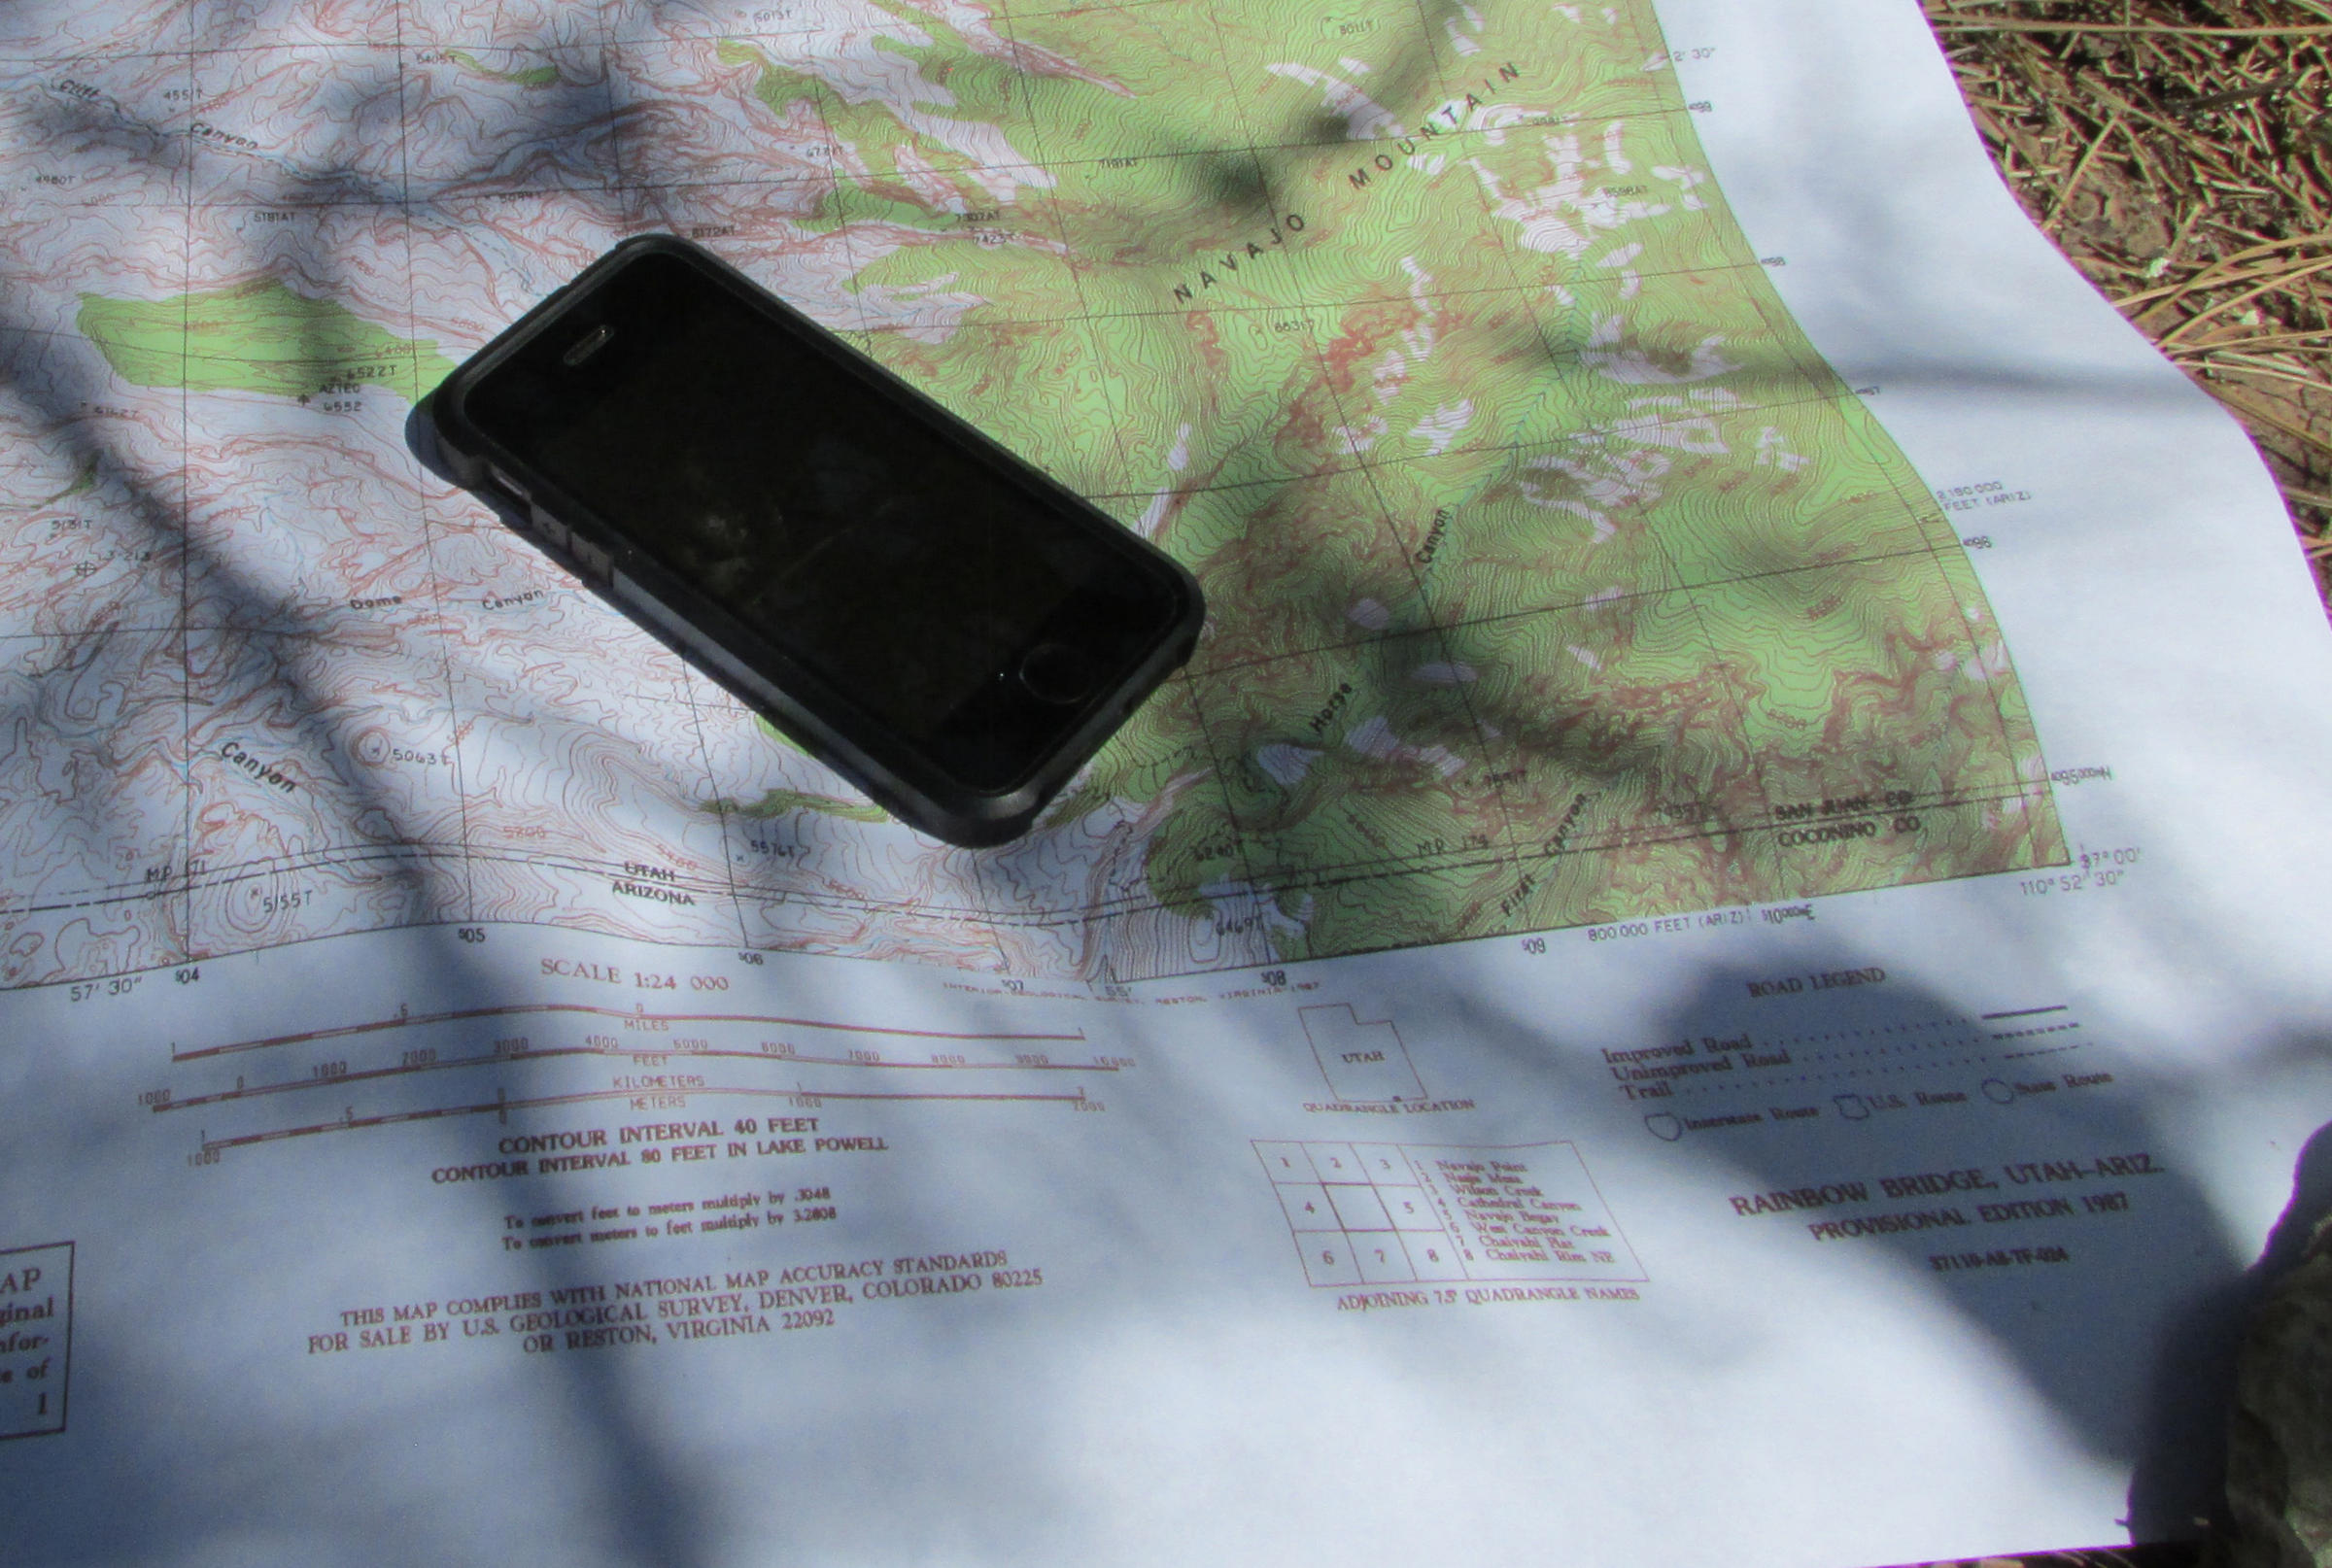 apps join paper maps to help utah backcountry navigation kuer backcountry travelers can opt for handy interactive smartphone maps now and the old paper versions are still available too